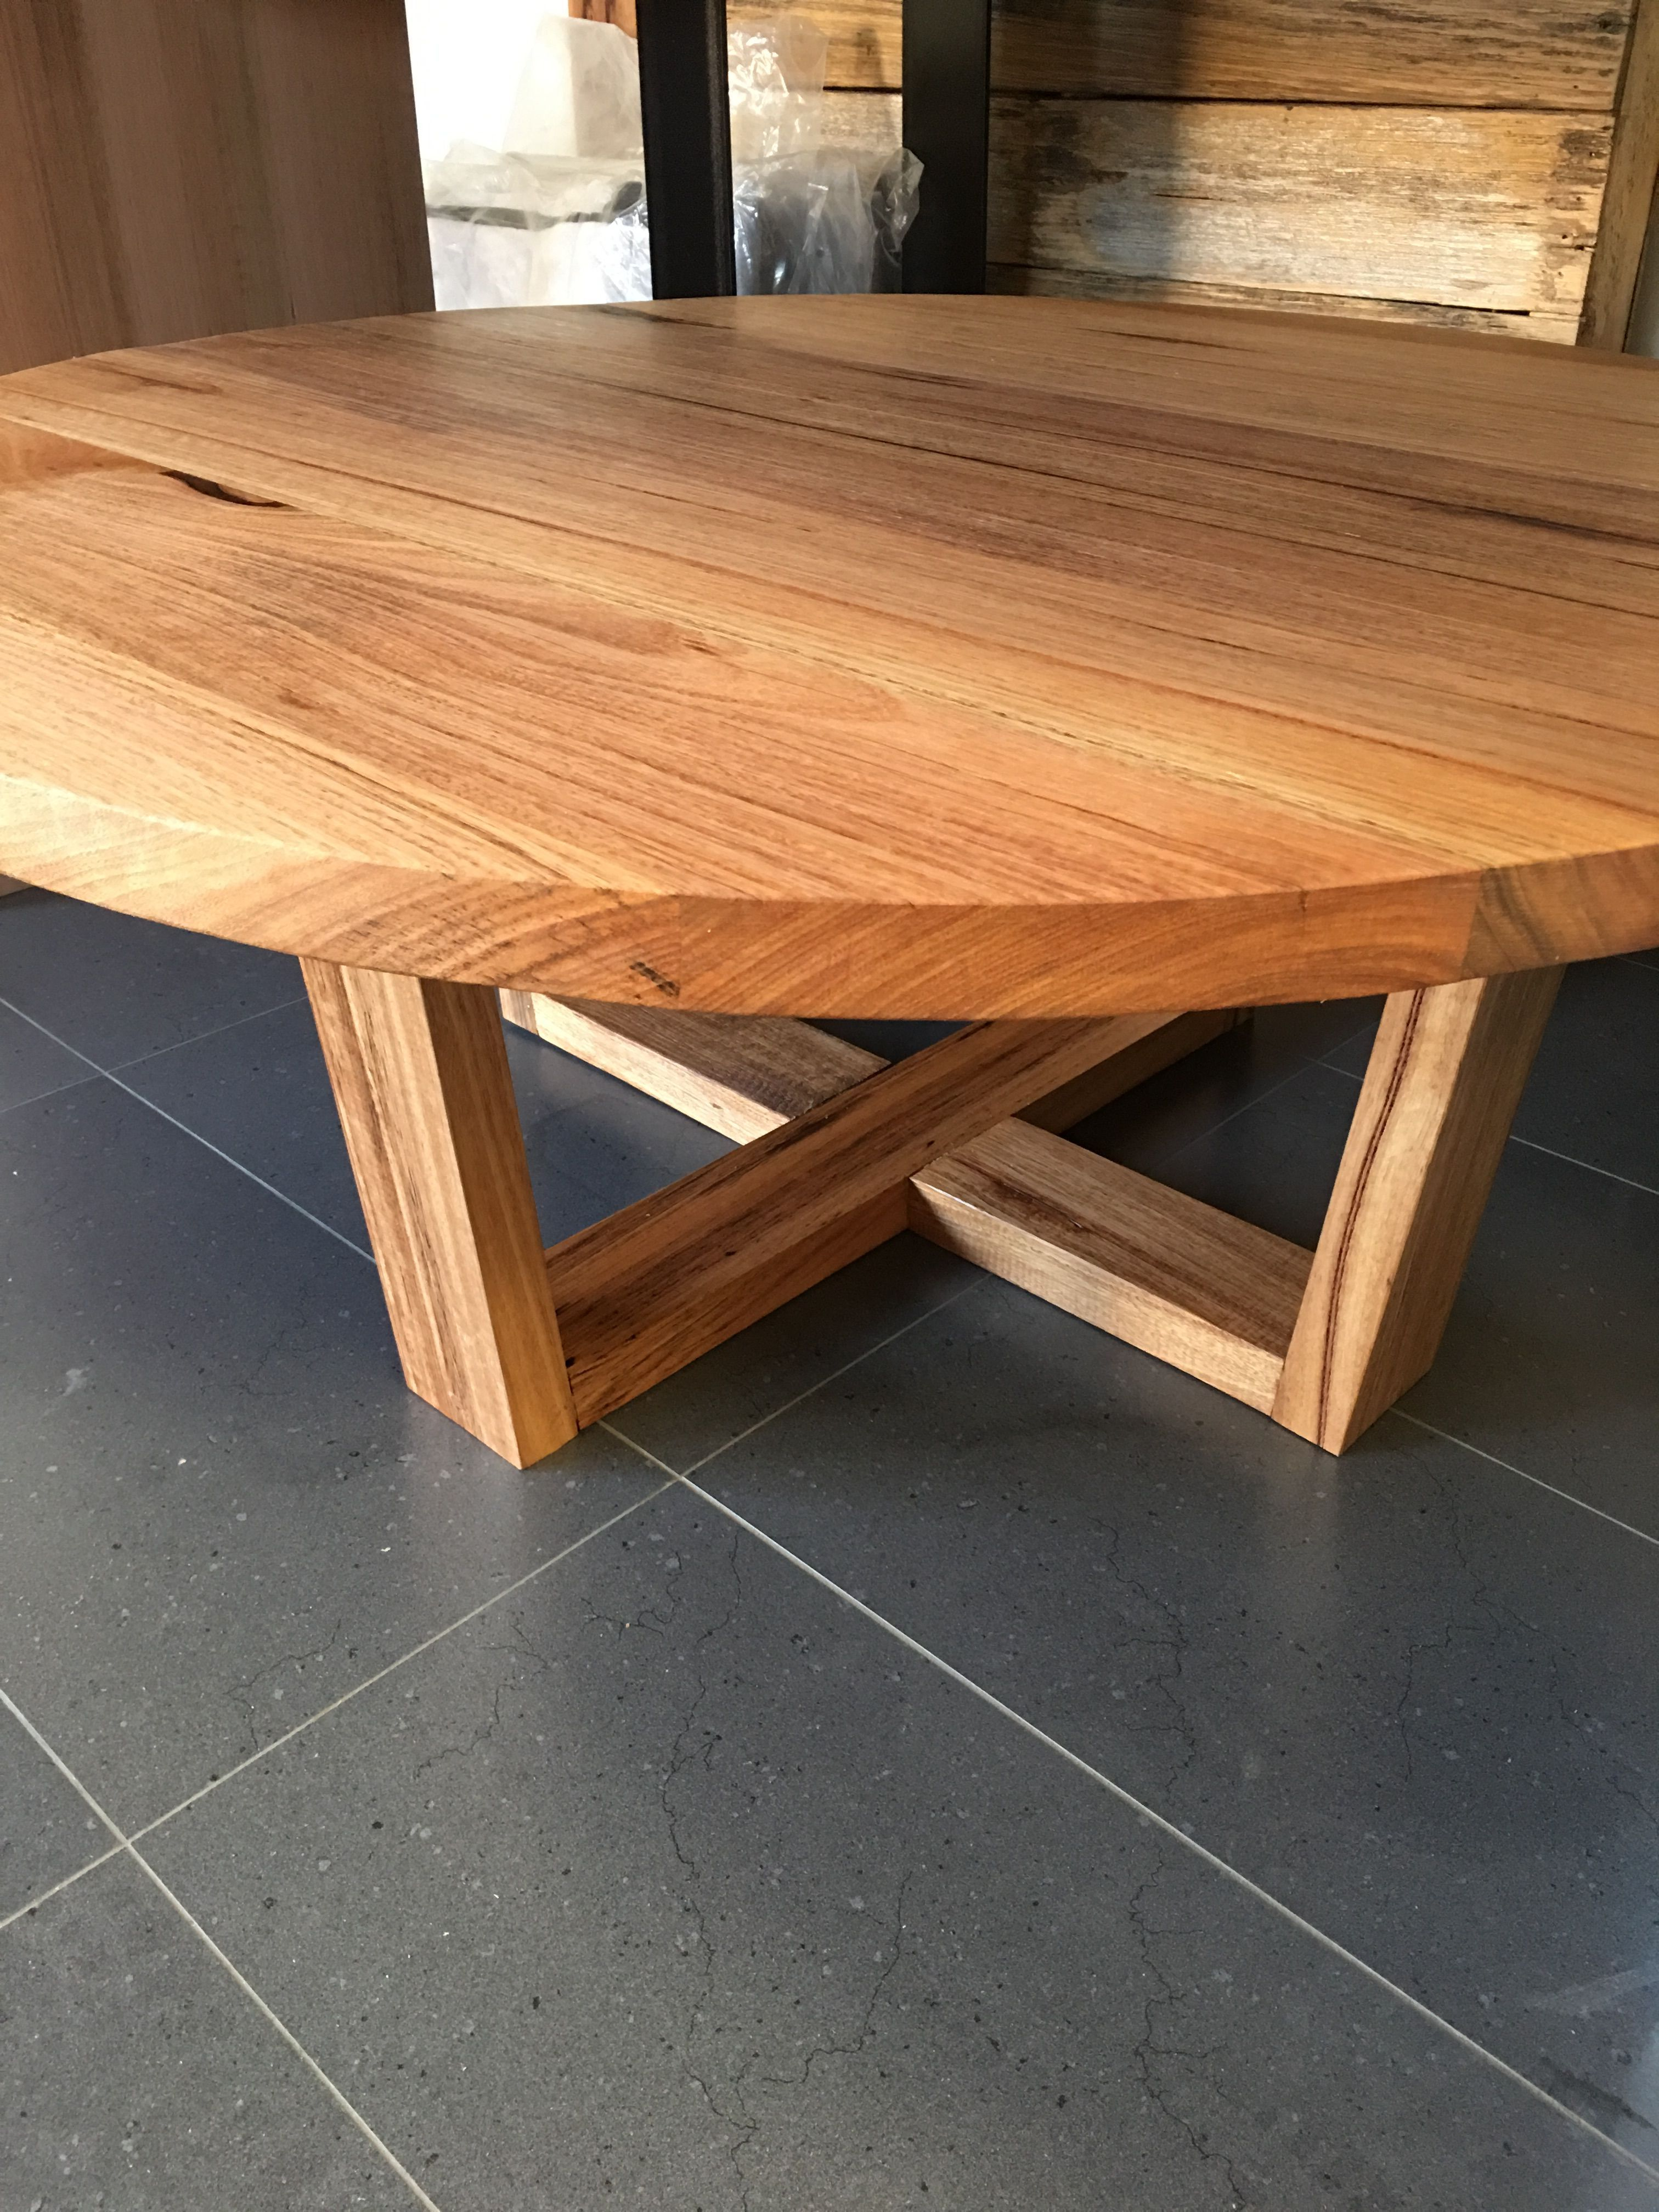 22 Modern Coffee Tables Designs Interesting Best Unique And Classy Round Wood Coffee Table Round Coffee Table Living Room Round Coffee Table [ 4032 x 3024 Pixel ]